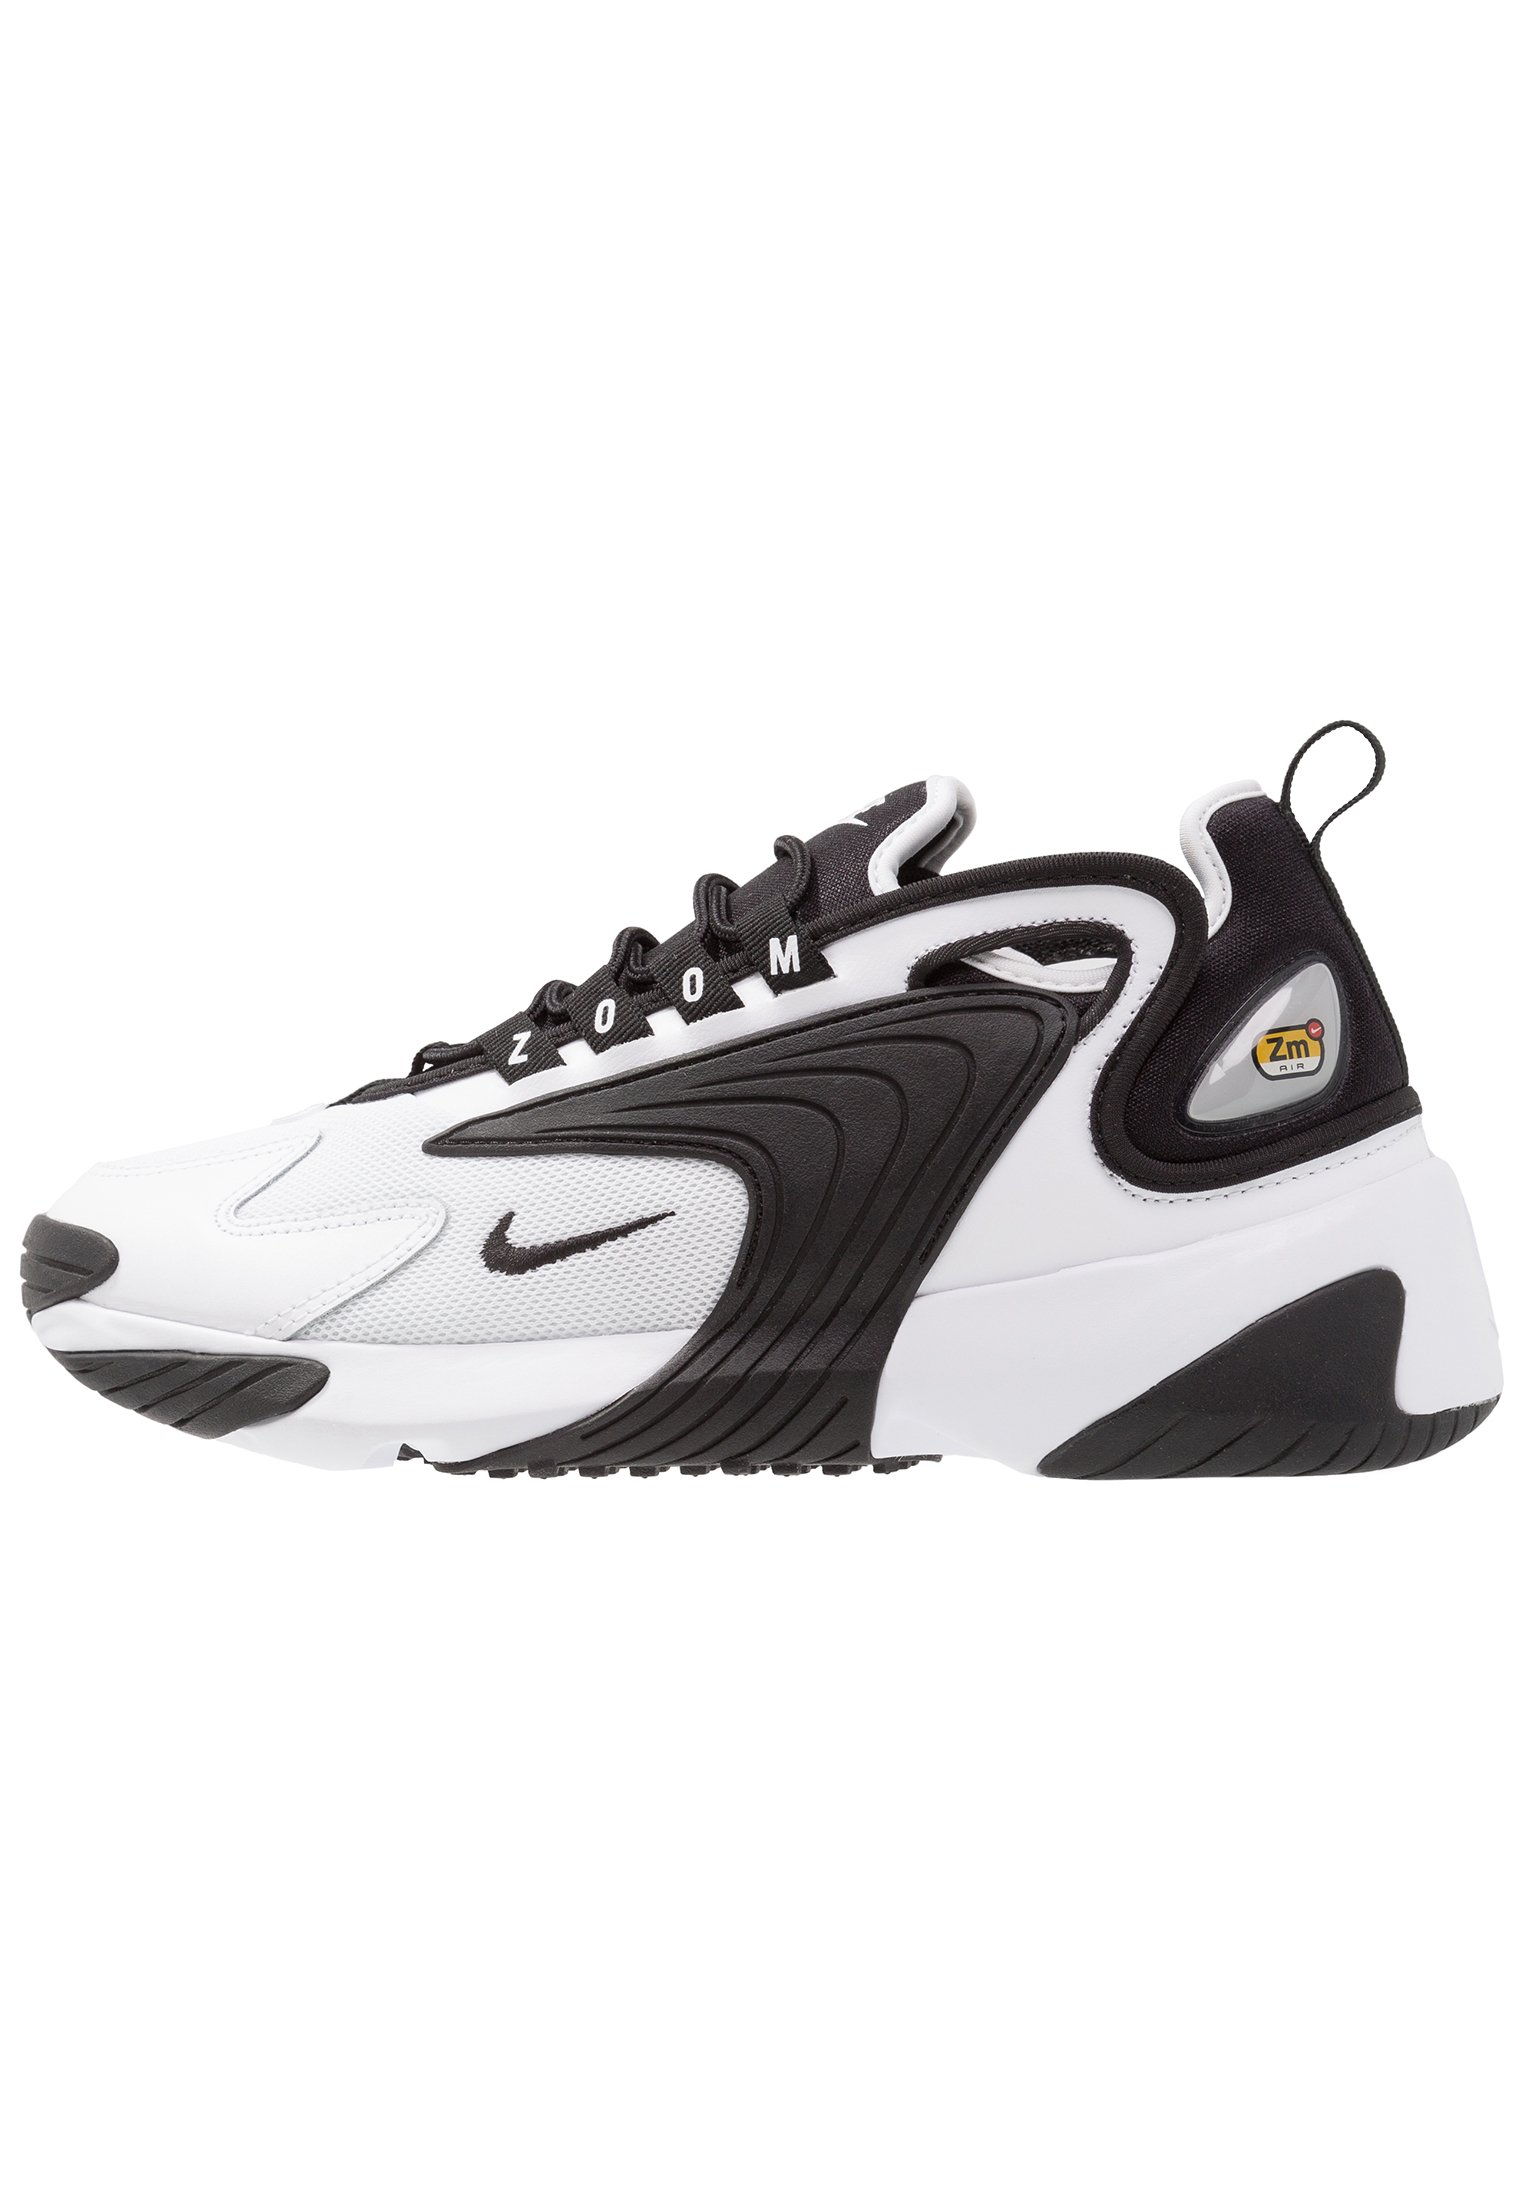 mizuno womens volleyball shoes size 8 x 3 inch downpipe